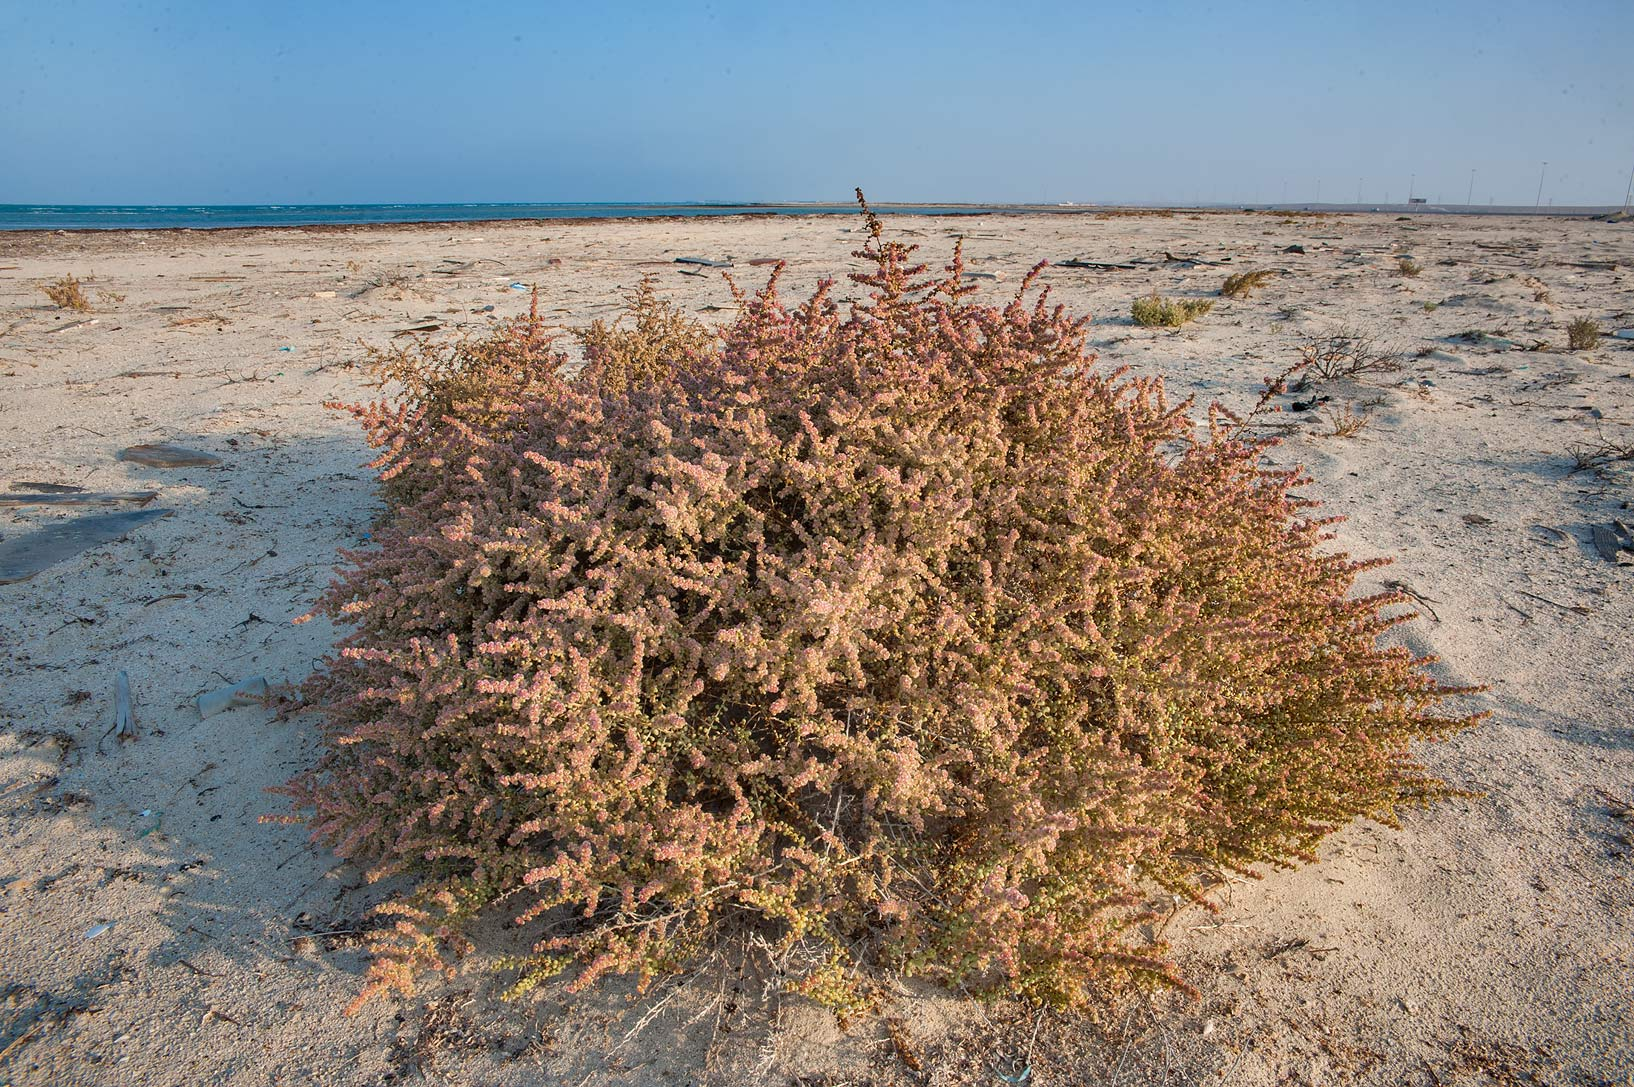 Blooming bush of Salsola drummondii on a beach in...Samra, near the border. Southern Qatar